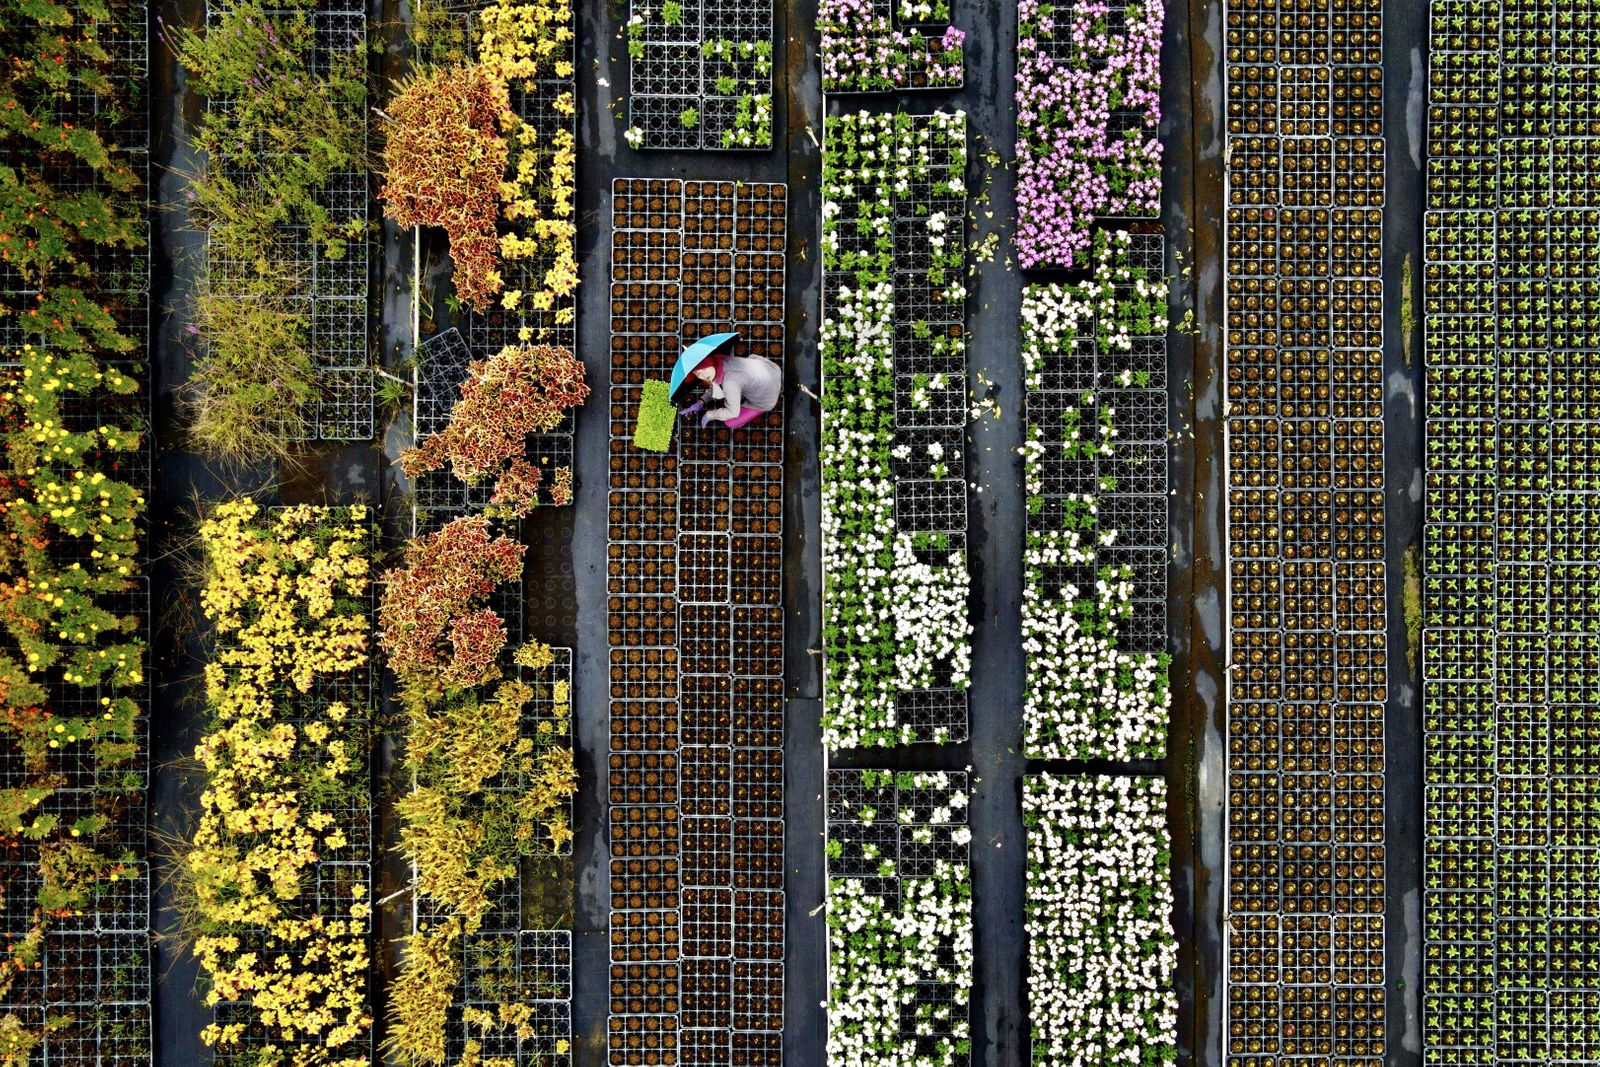 TOPSHOT-TAIWAN-AGRICULTURE